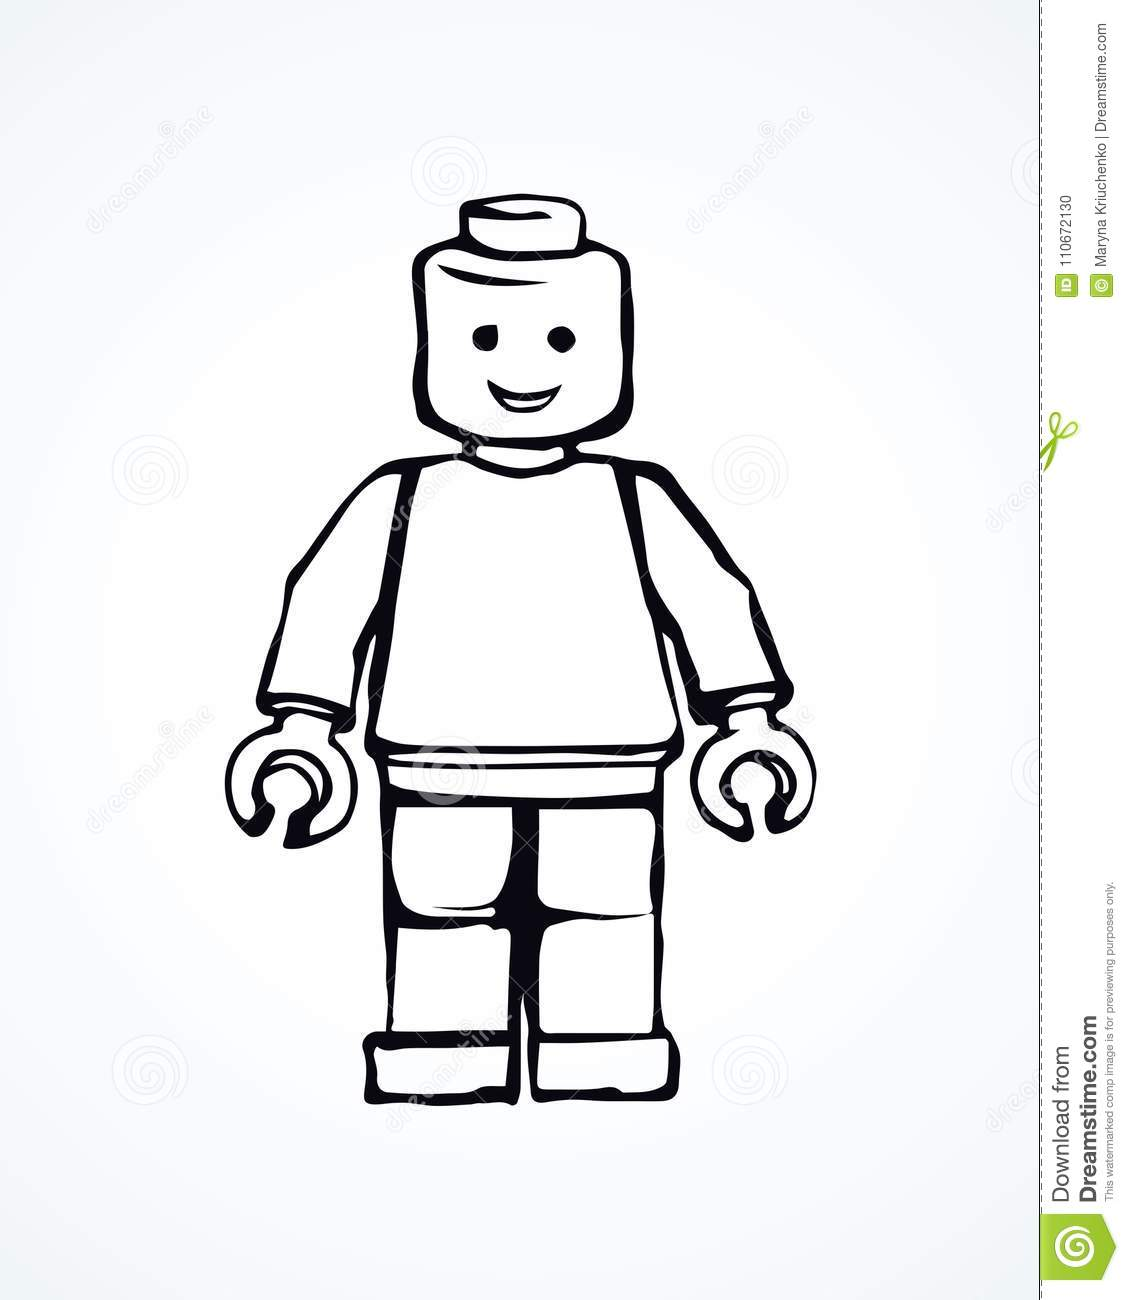 Lego. Vector Drawing Editorial Image. Illustration Of